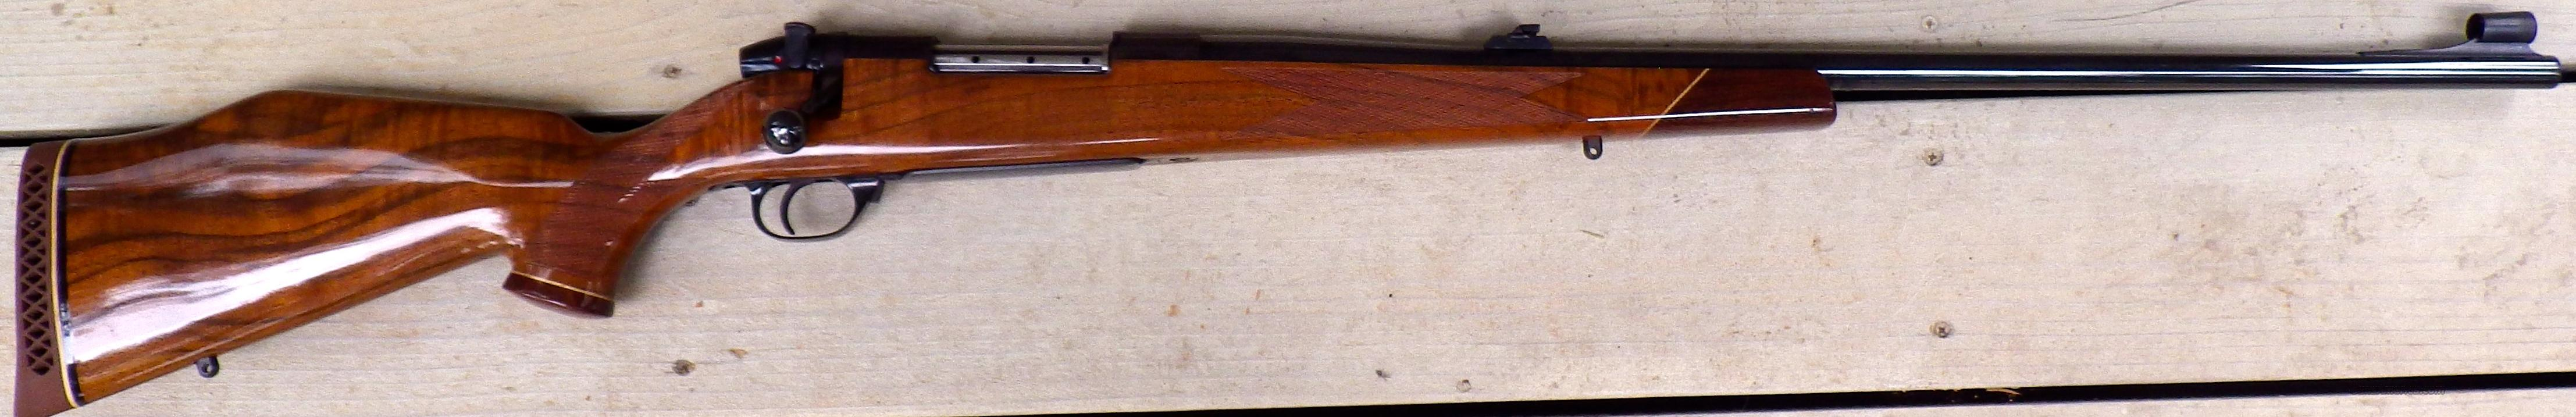 Weatherby Mark V Deluxe .378 Weatherby Magnum  Guns > Rifles > Weatherby Rifles > Sporting